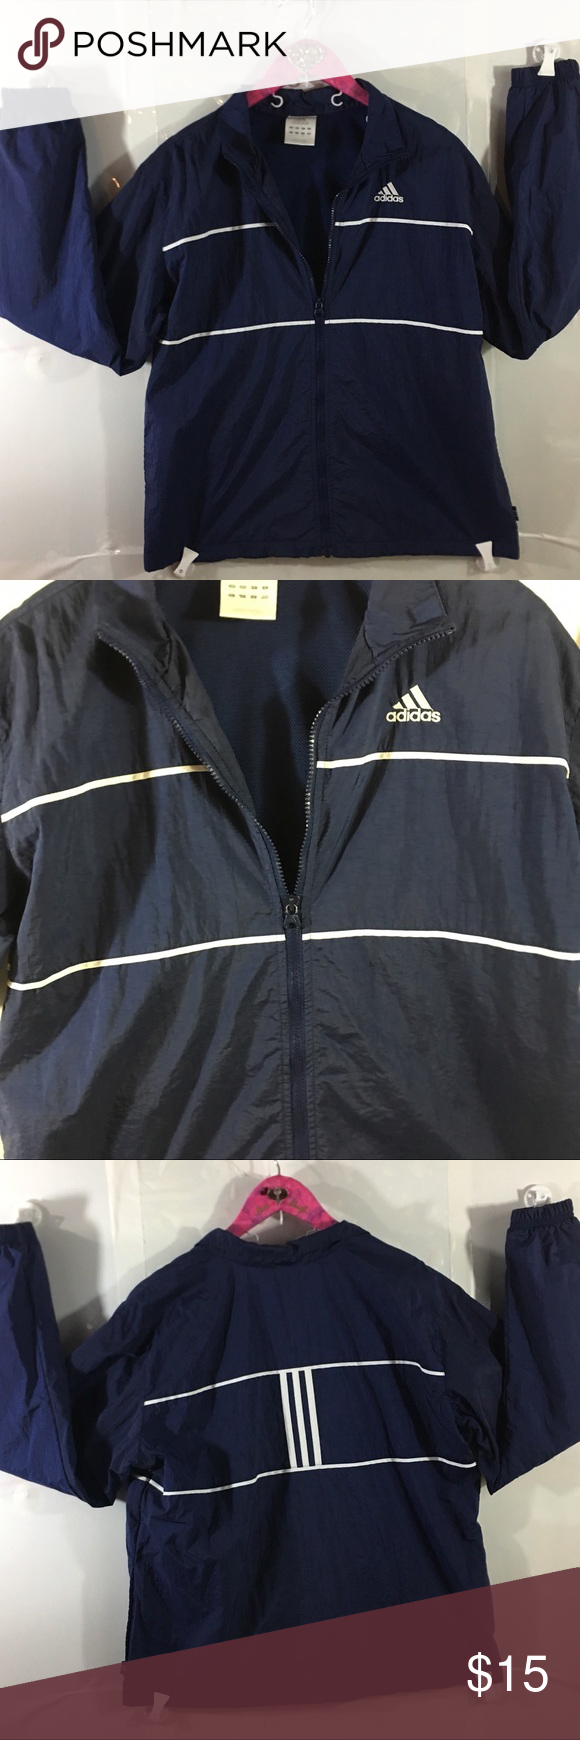 649541ad23ce Women s ADIDAS Vintage Track Jacket Women s ADIDAS Vintage Track Jacket in  the color navy blue with white stripes and has a Zip front it is the kind  that ...